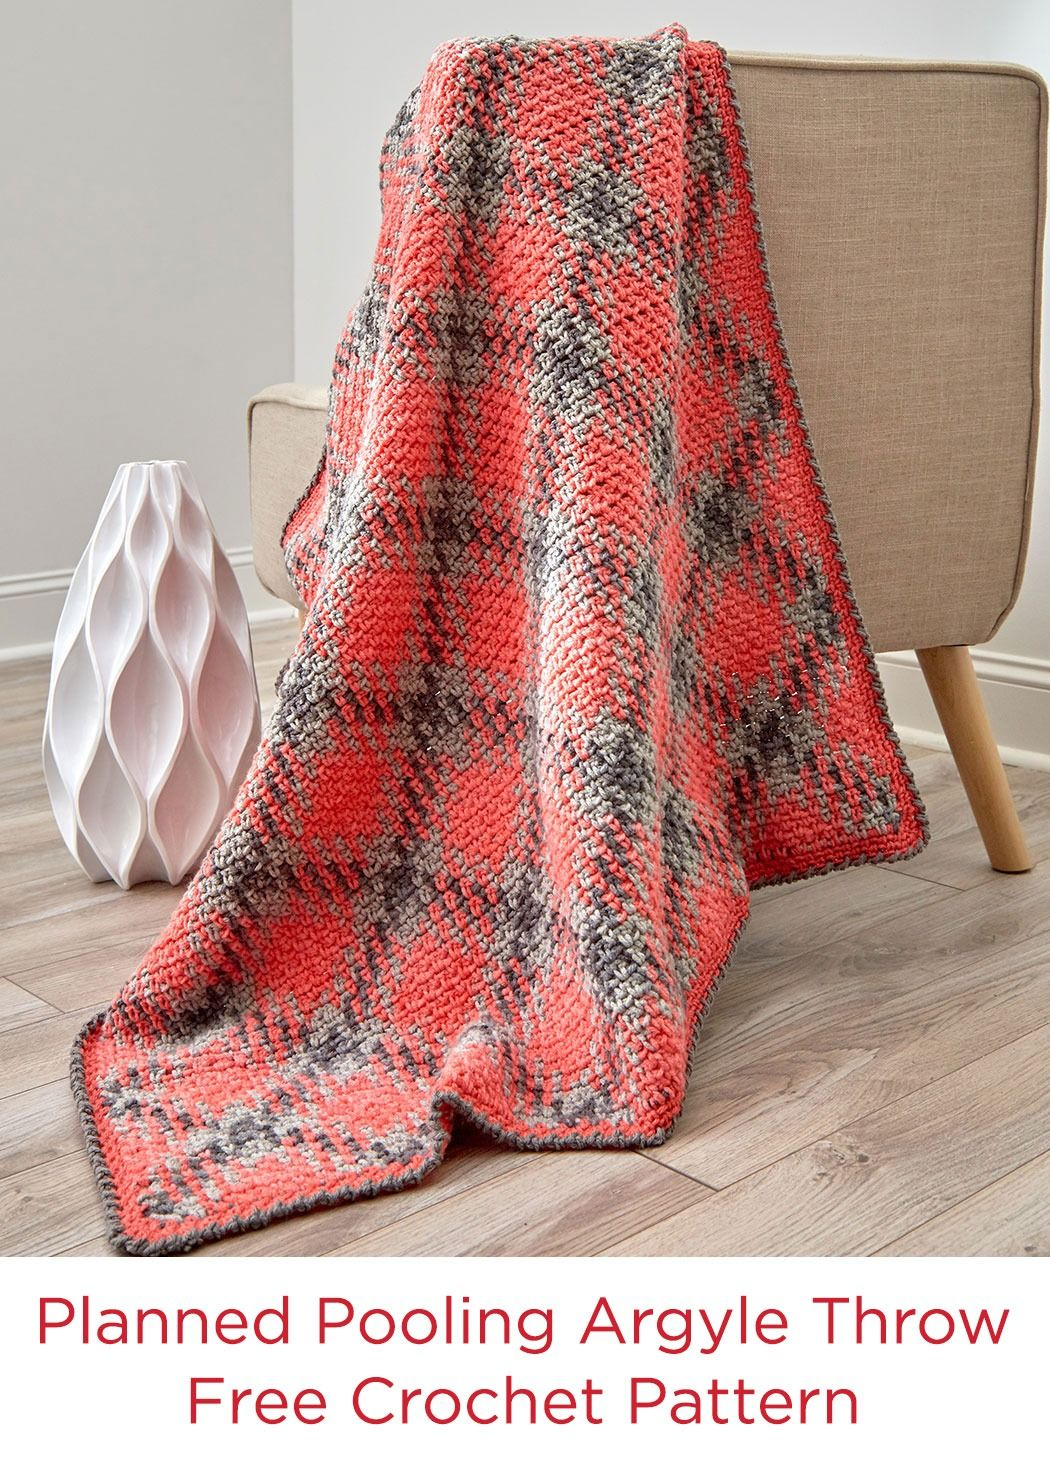 Planned Pooling Argyle Throw or Blanket Free Crochet Pattern in Red ...